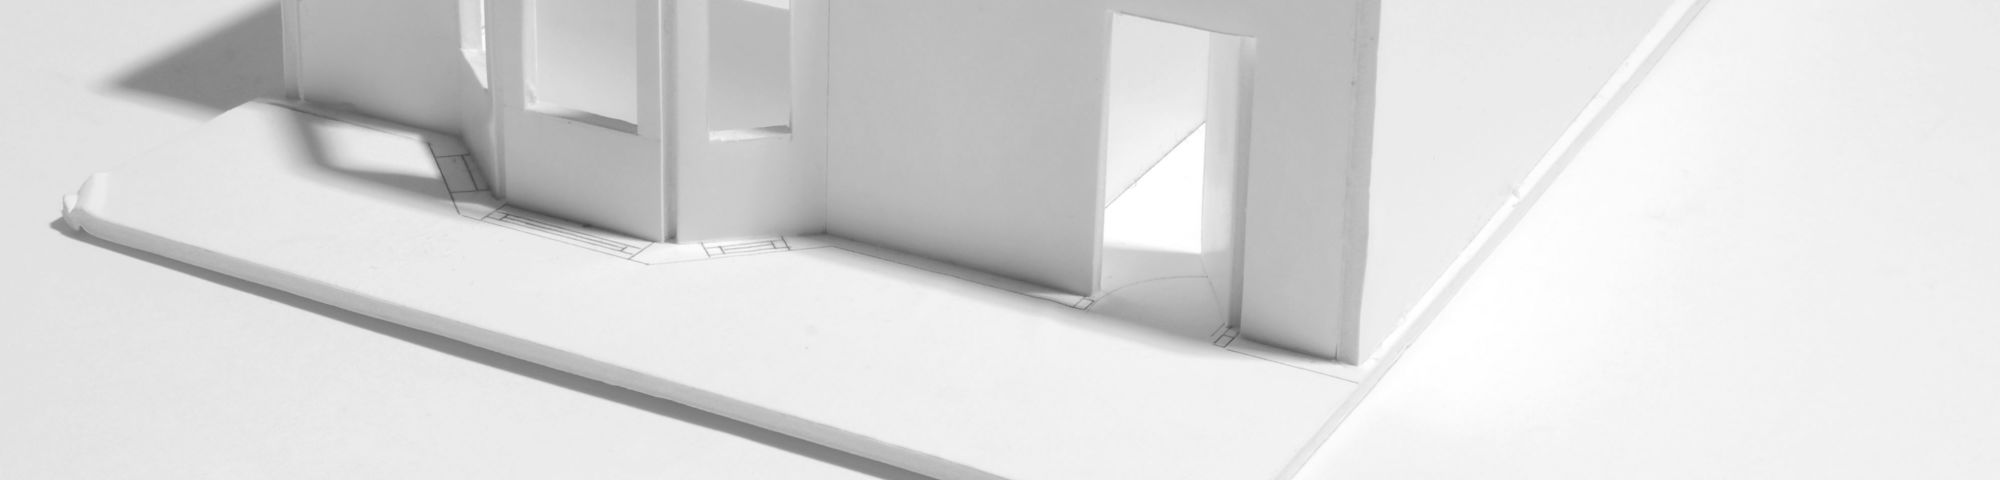 architecture spatial and interior design short courses ual